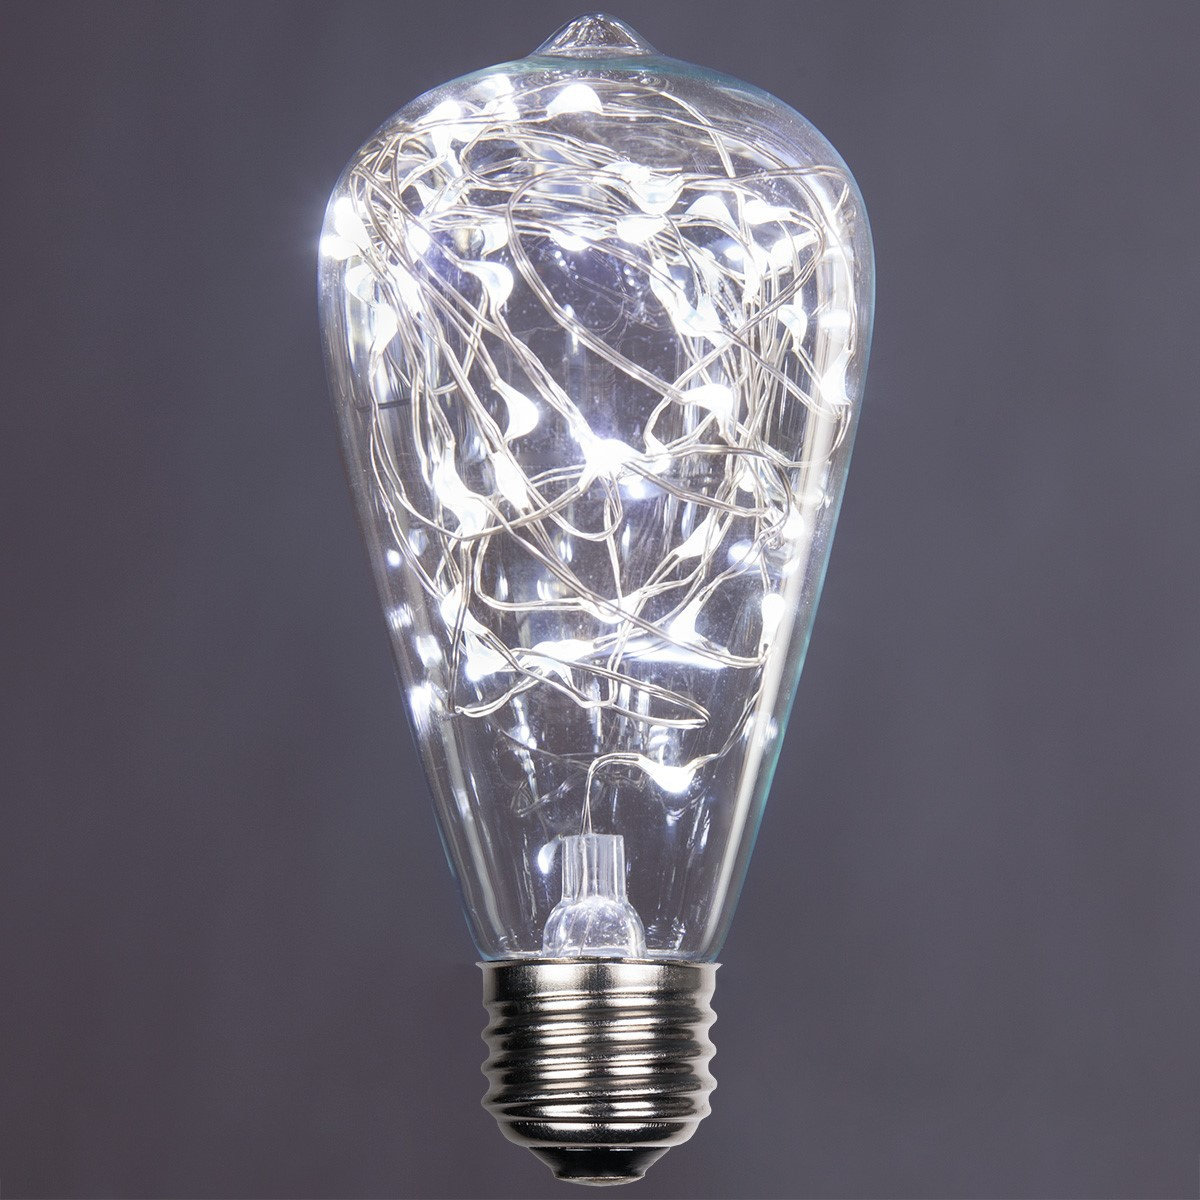 St64 Cool White Ledimagine Tm Fairy Light Bulb